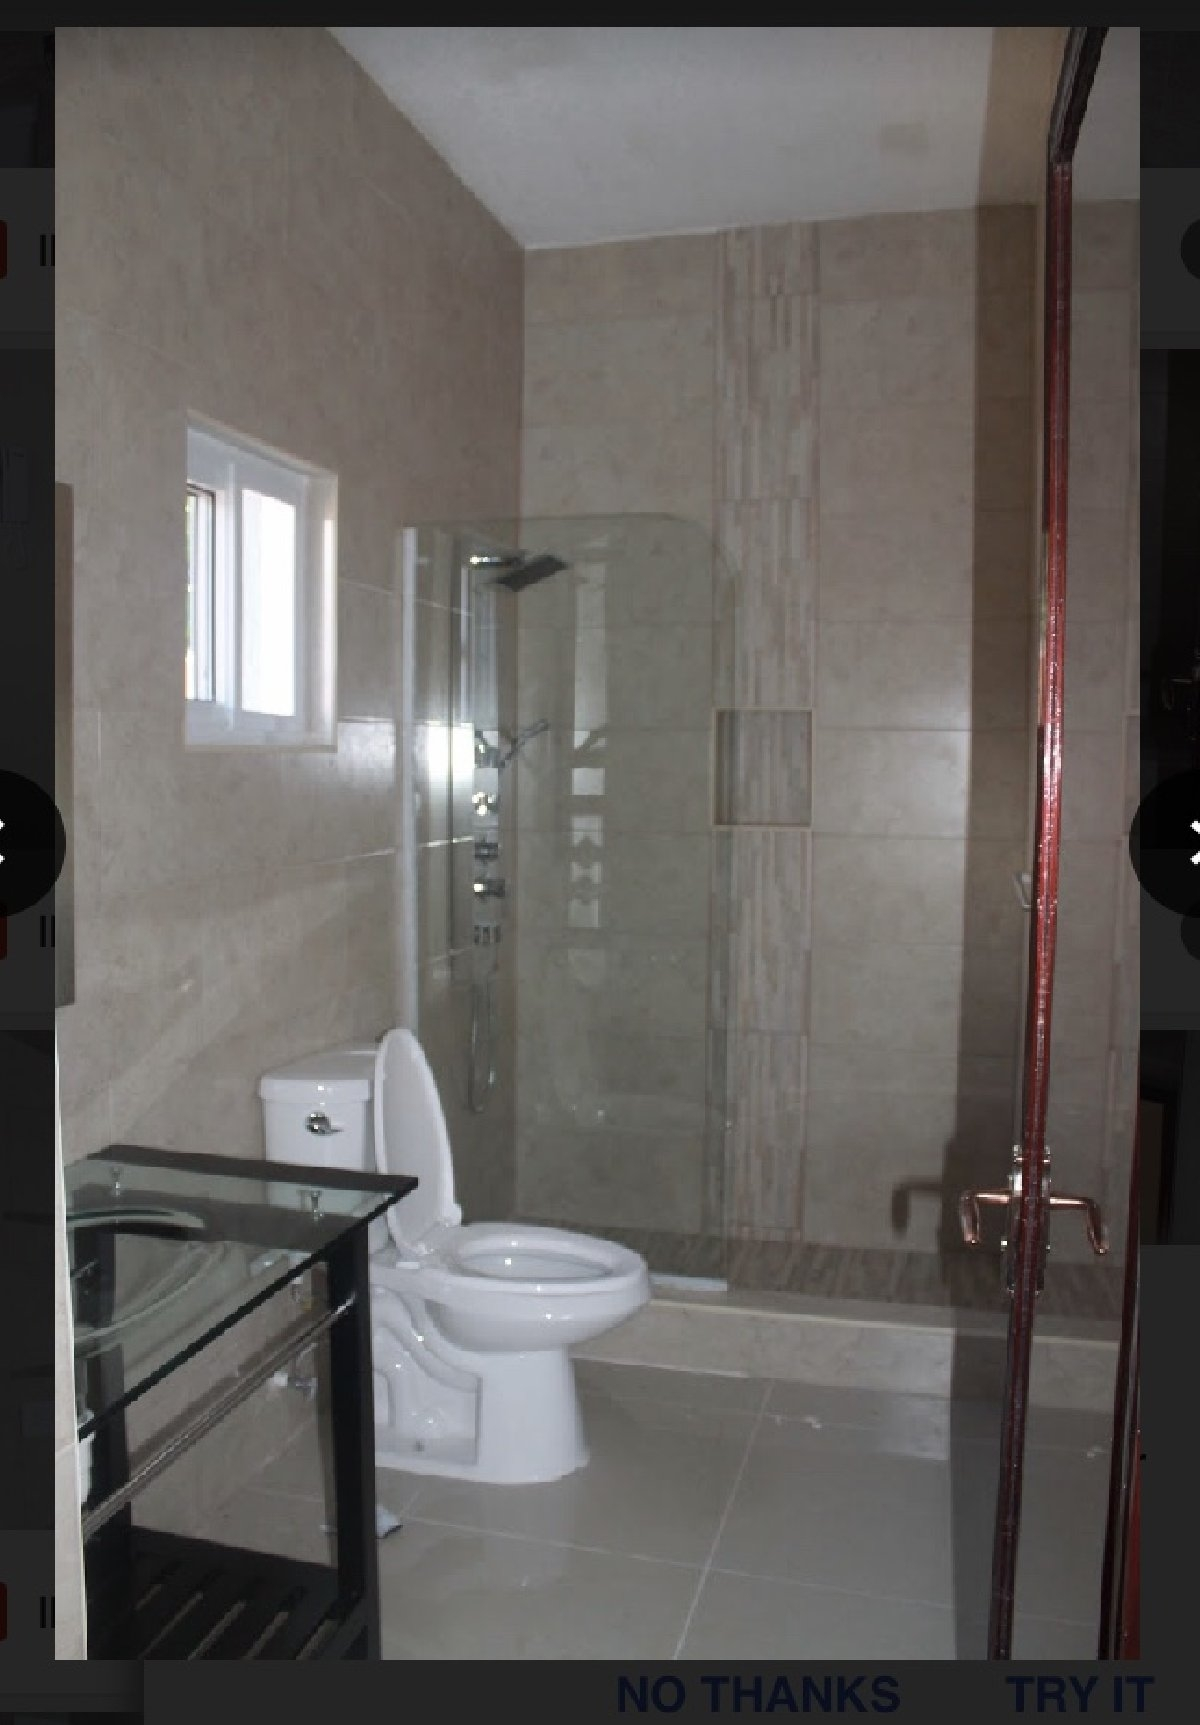 2 Bedroom 2 1/2 Bathroom Apartment for rent in Kingston 6 ...